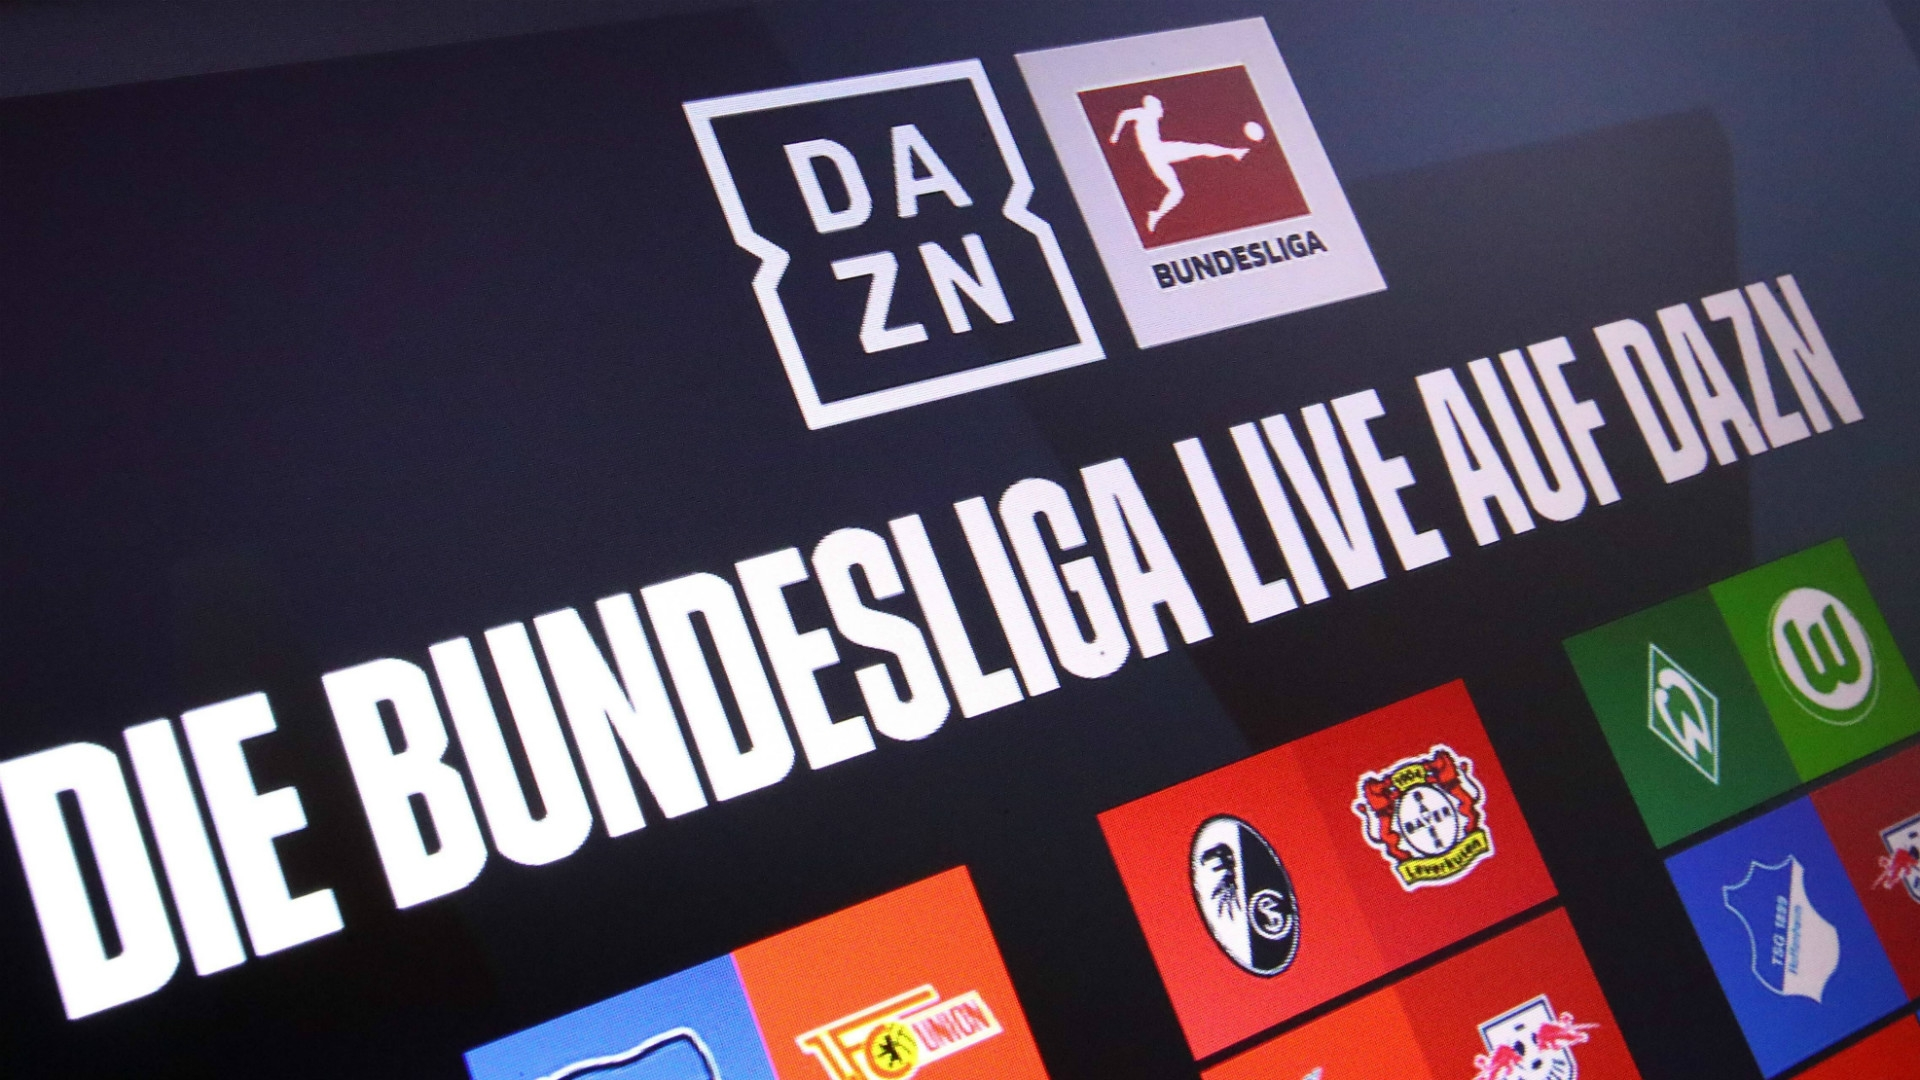 ONLY GERMANY DAZN Programm Bundesliga